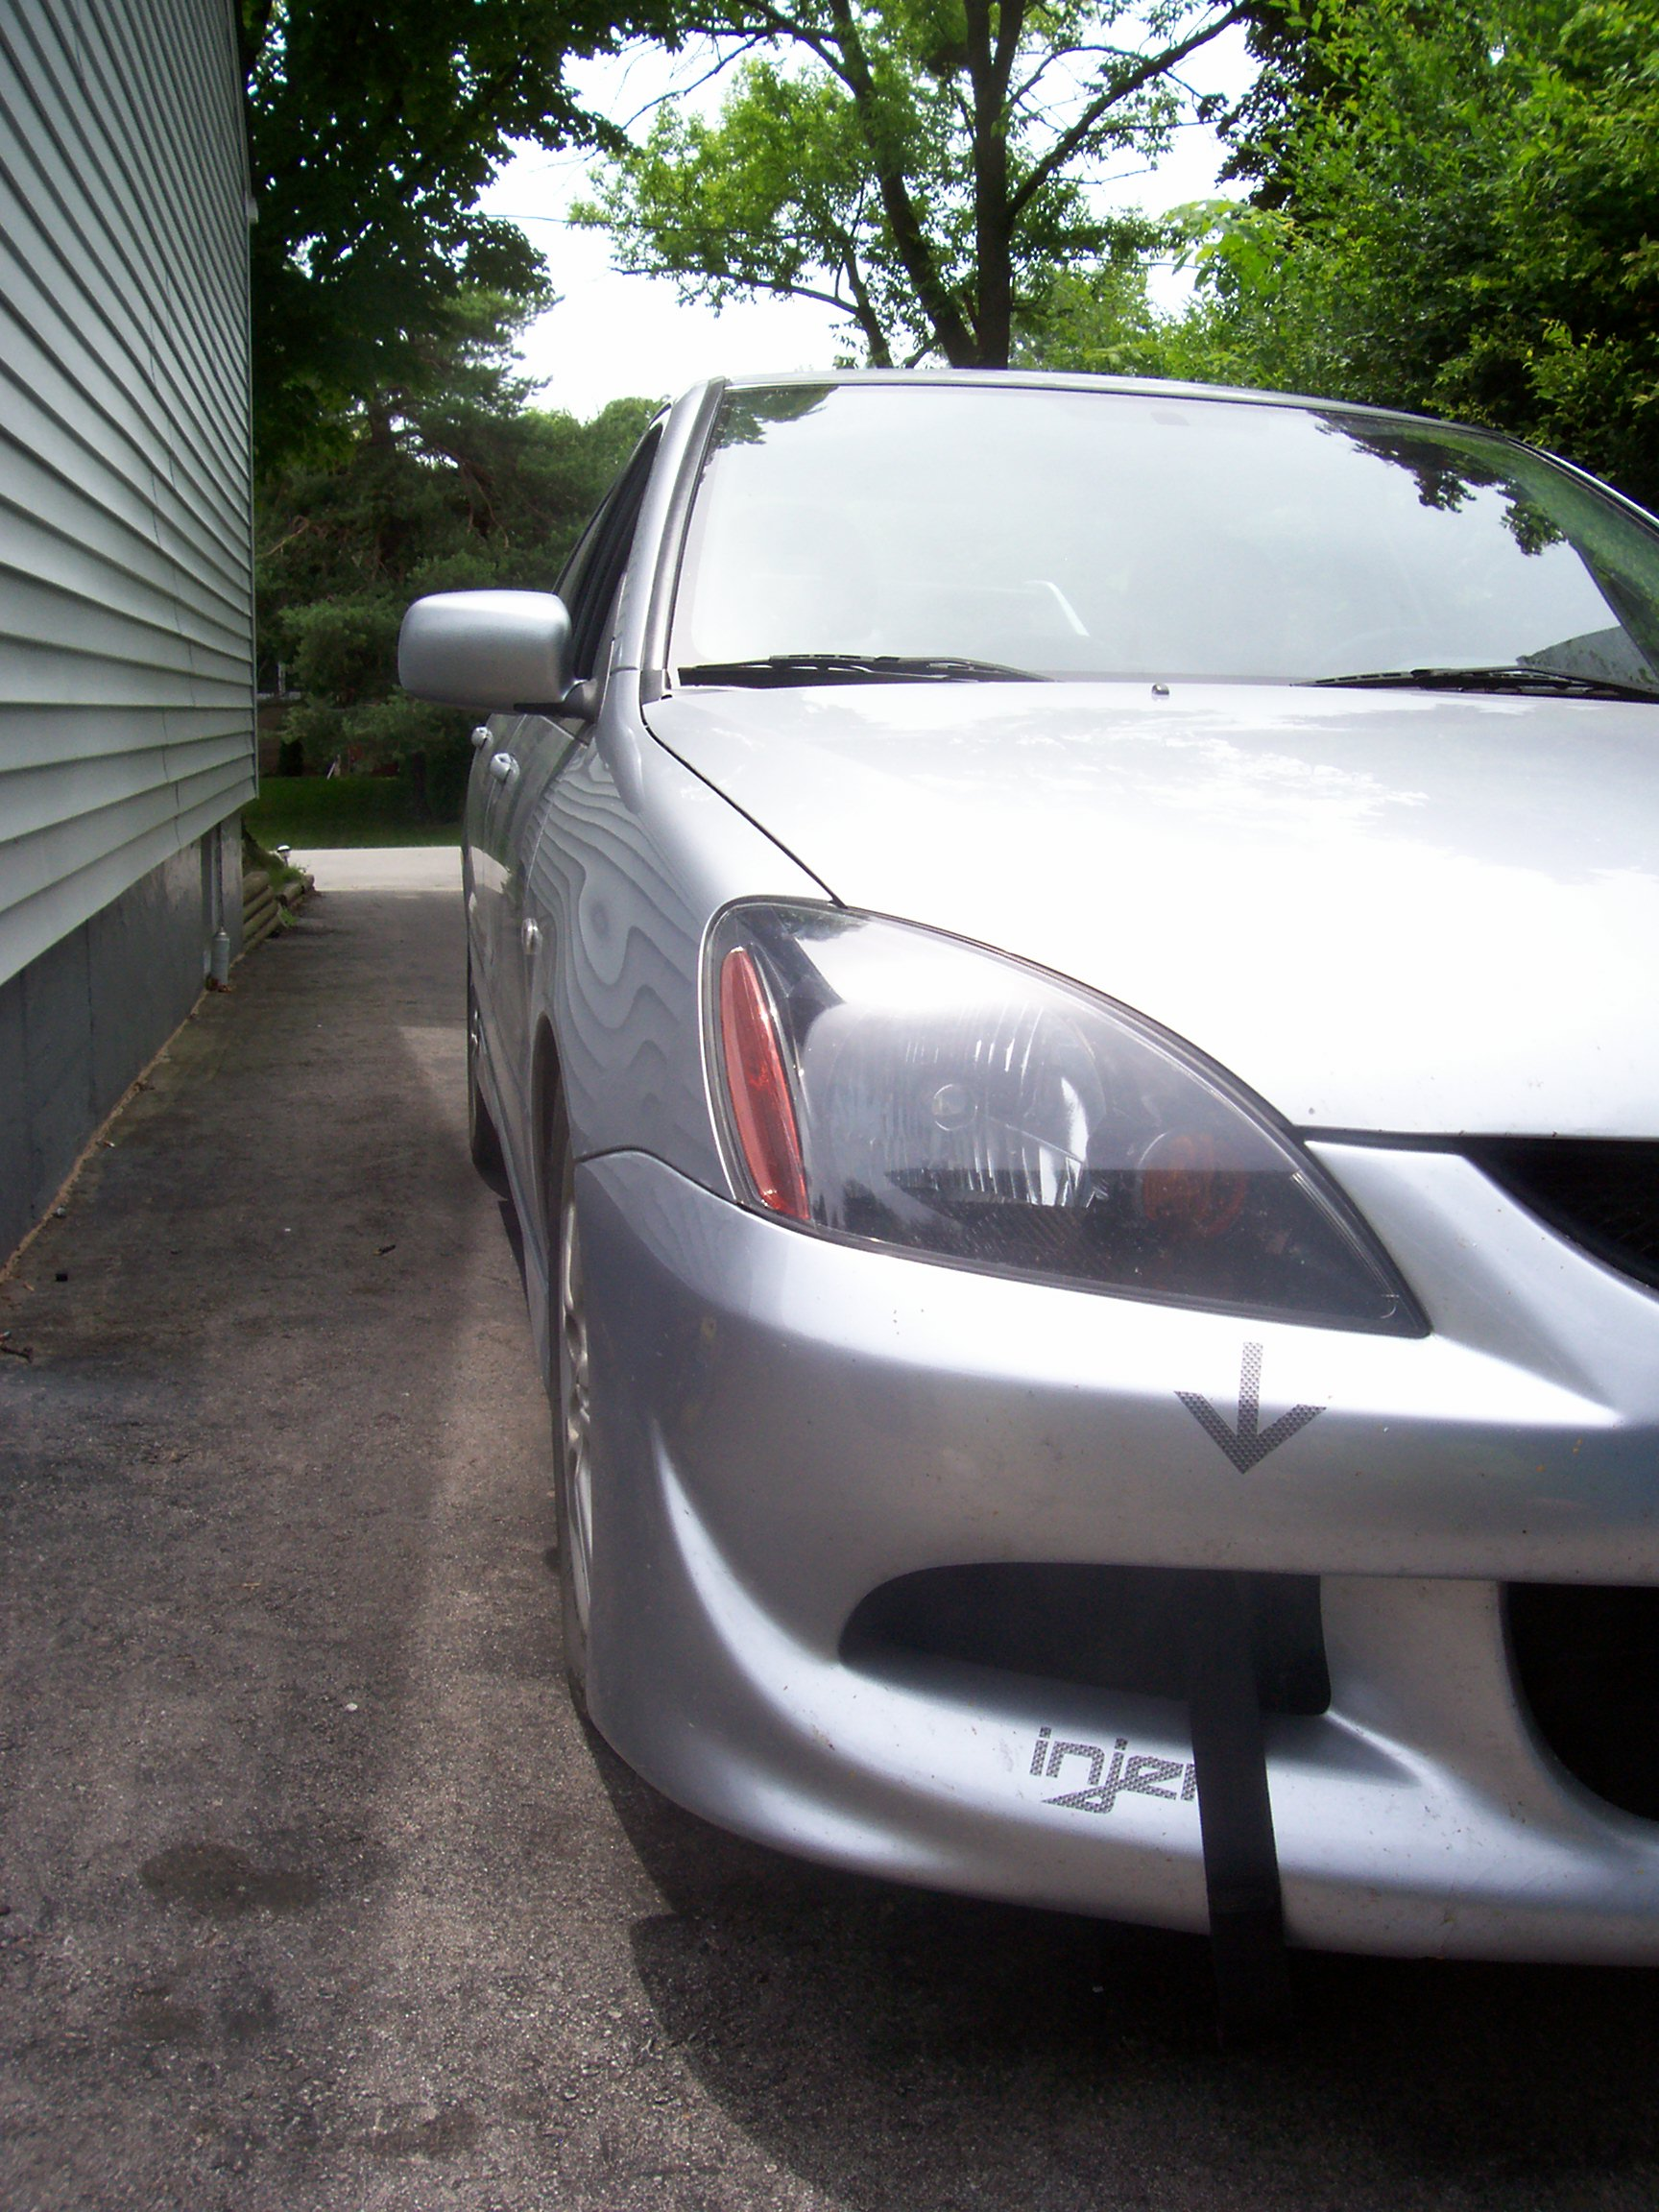 2005 Mitsubishi Lancer RalliArt 14 mile Drag Racing timeslip